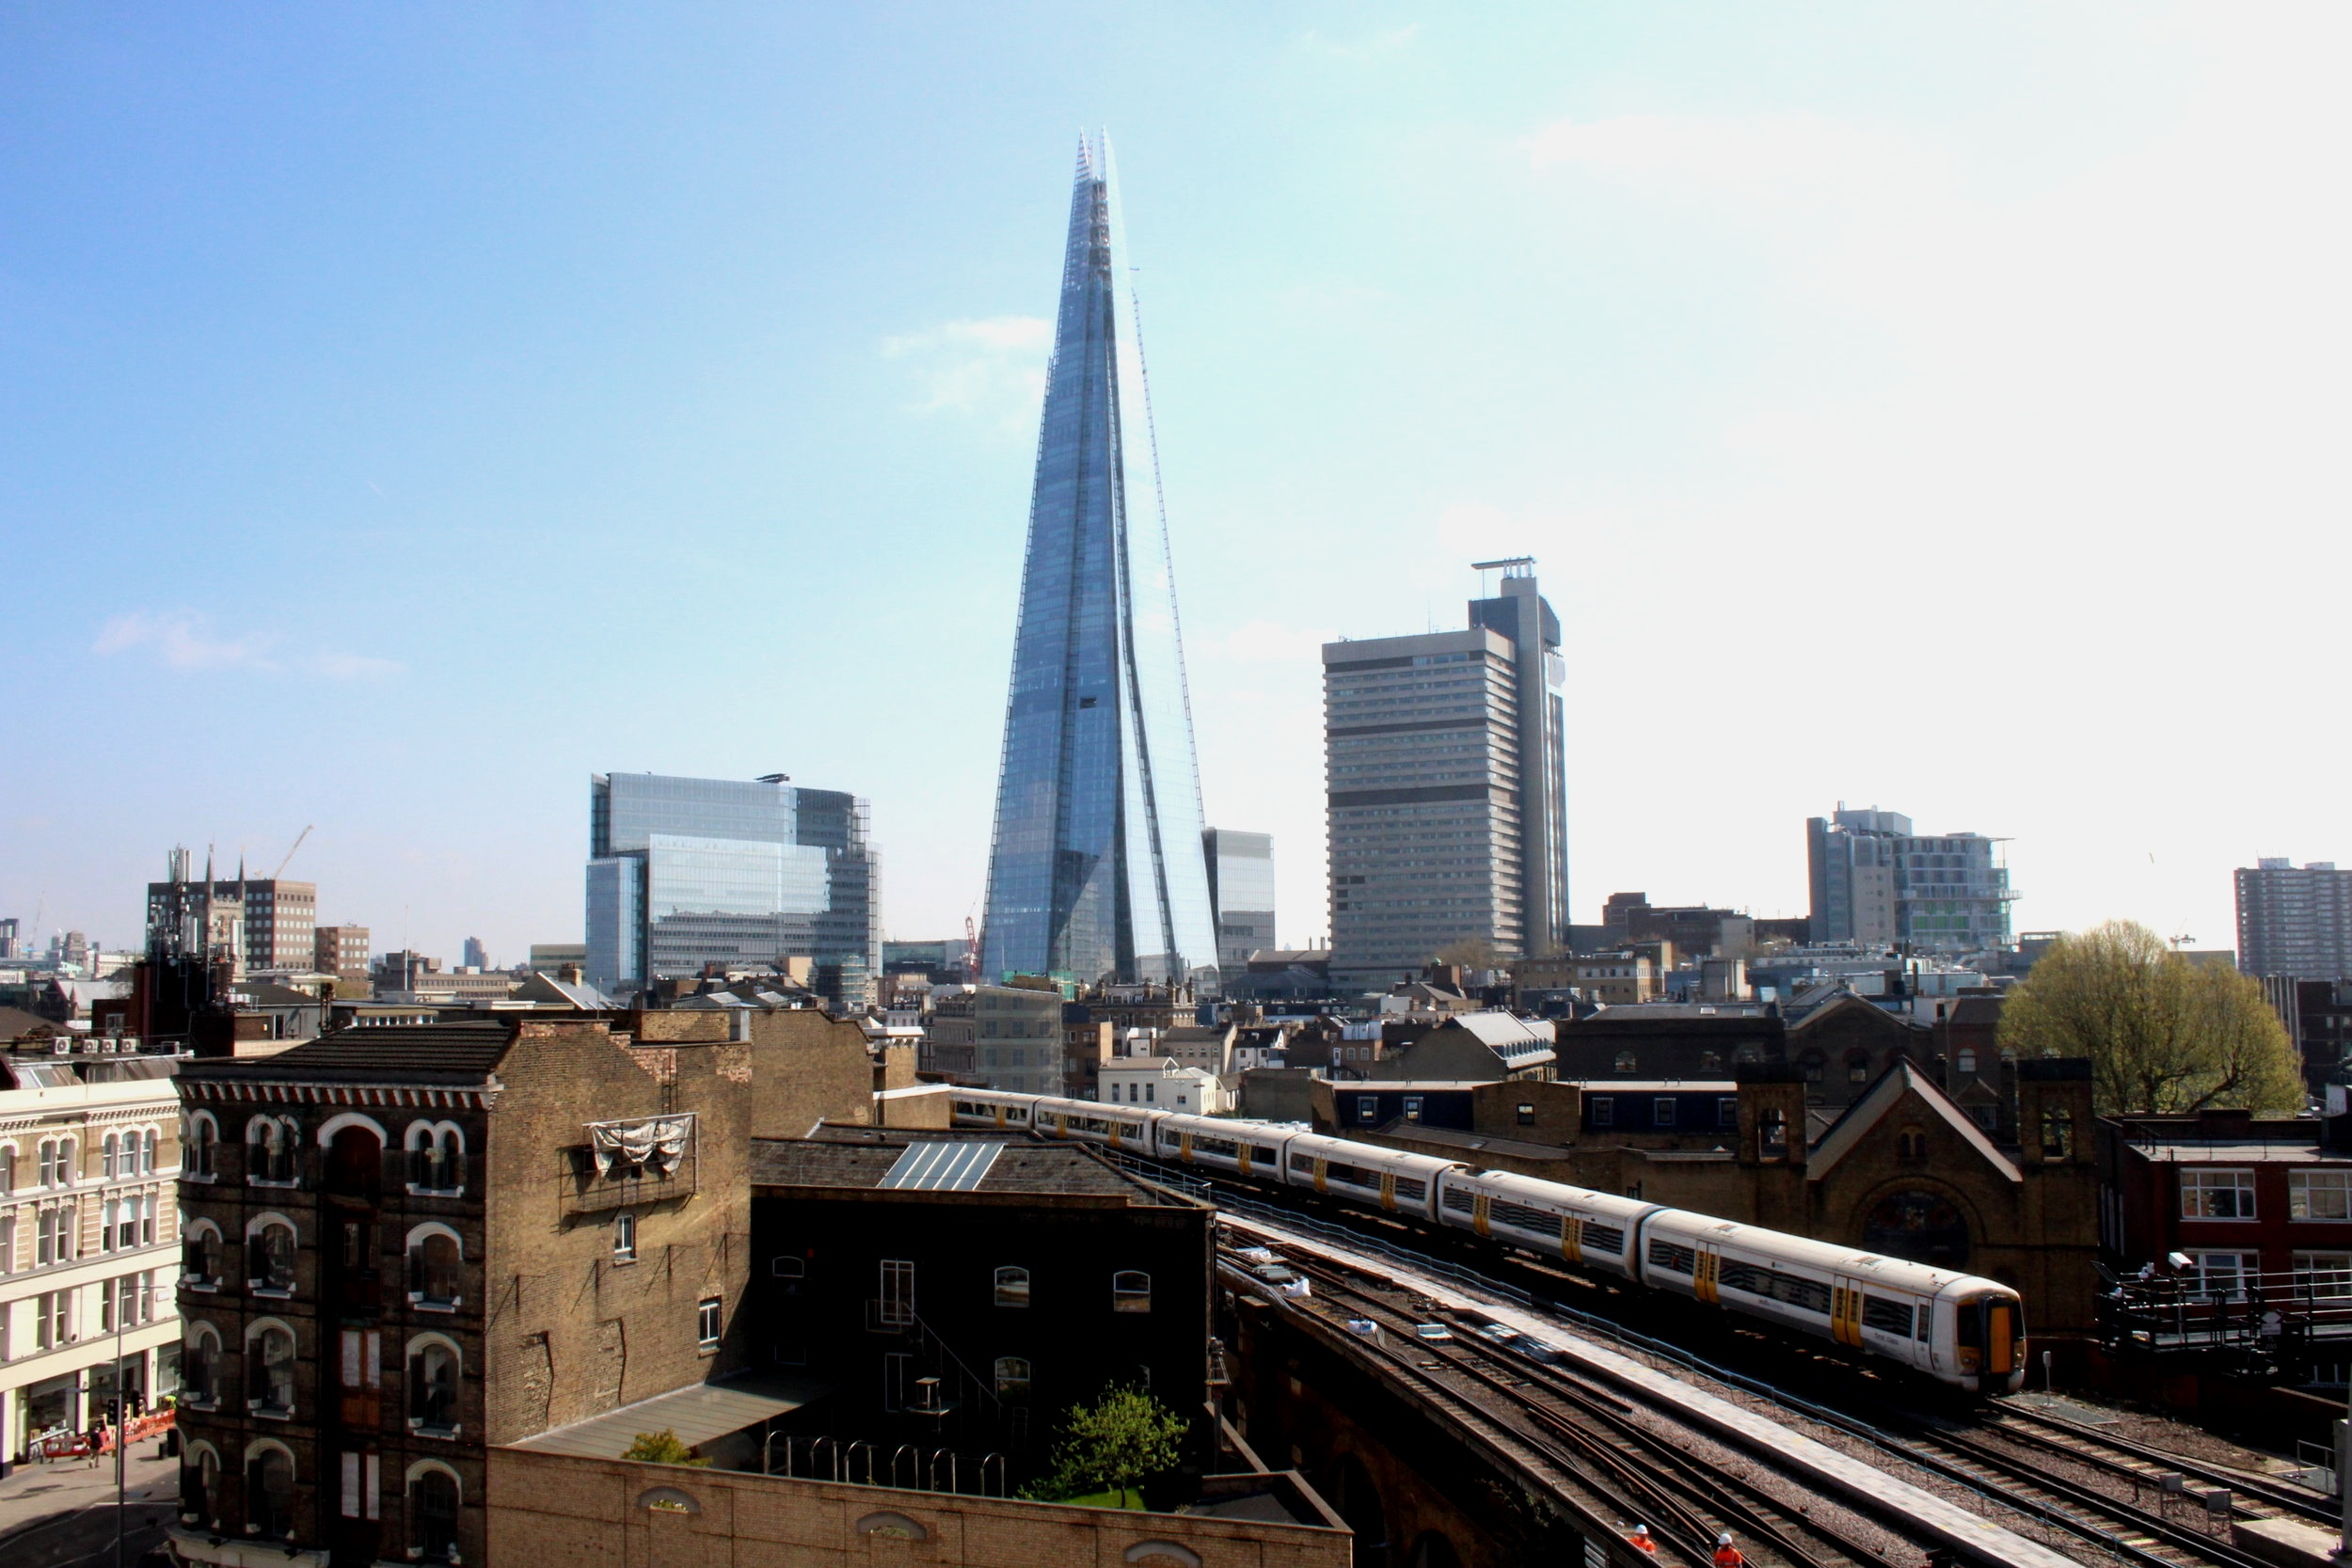 Located in the heart of Bankside with views across the city to the Shard